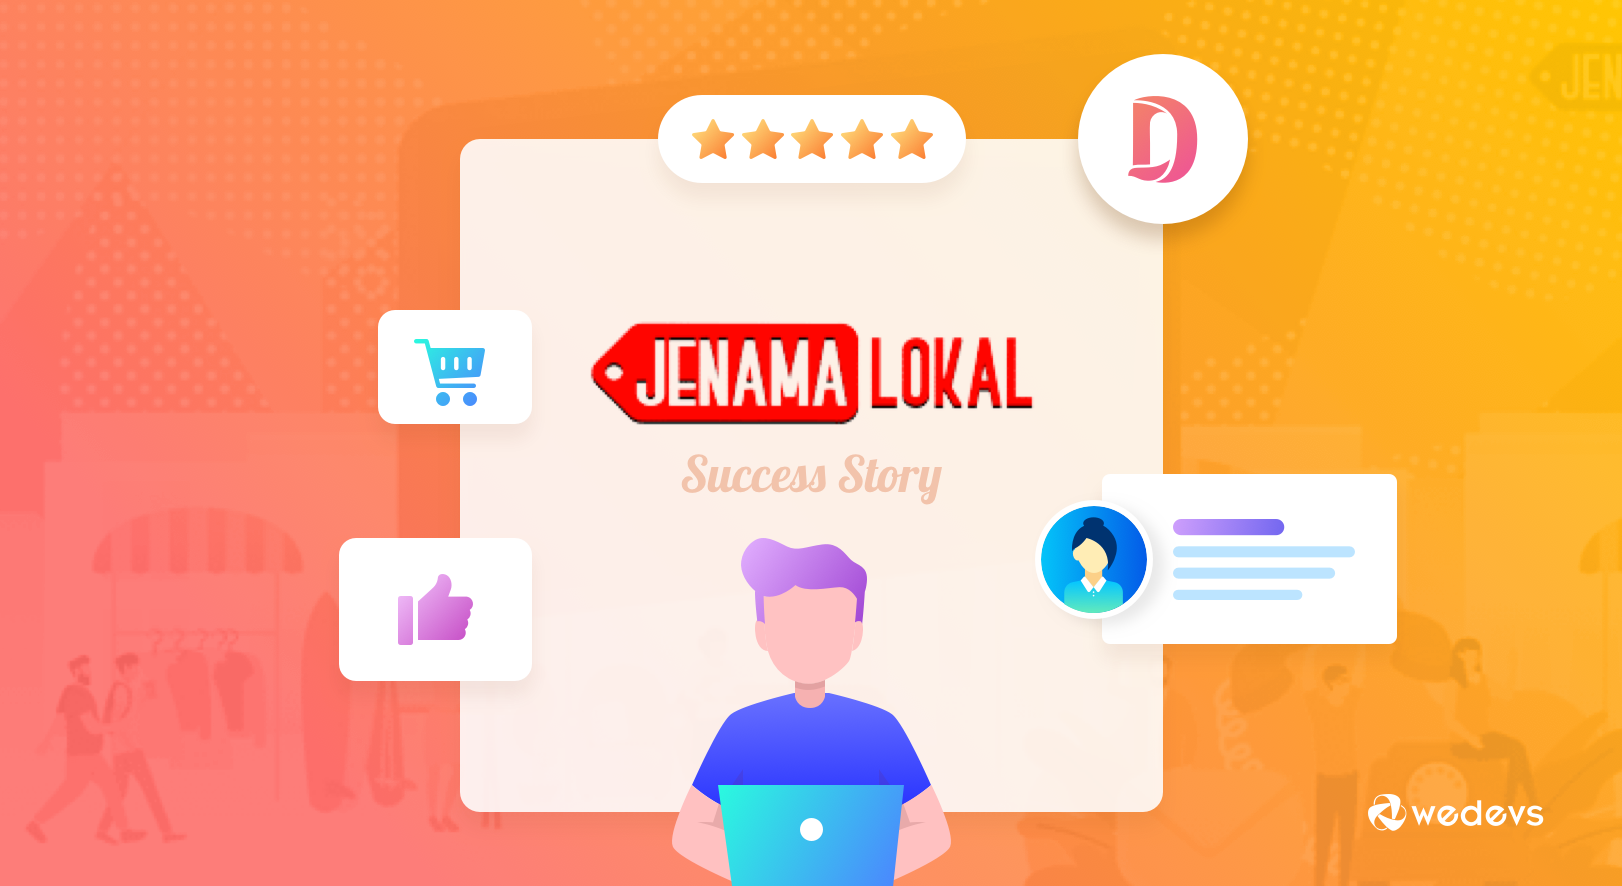 Jenamalokal Success Story feature image